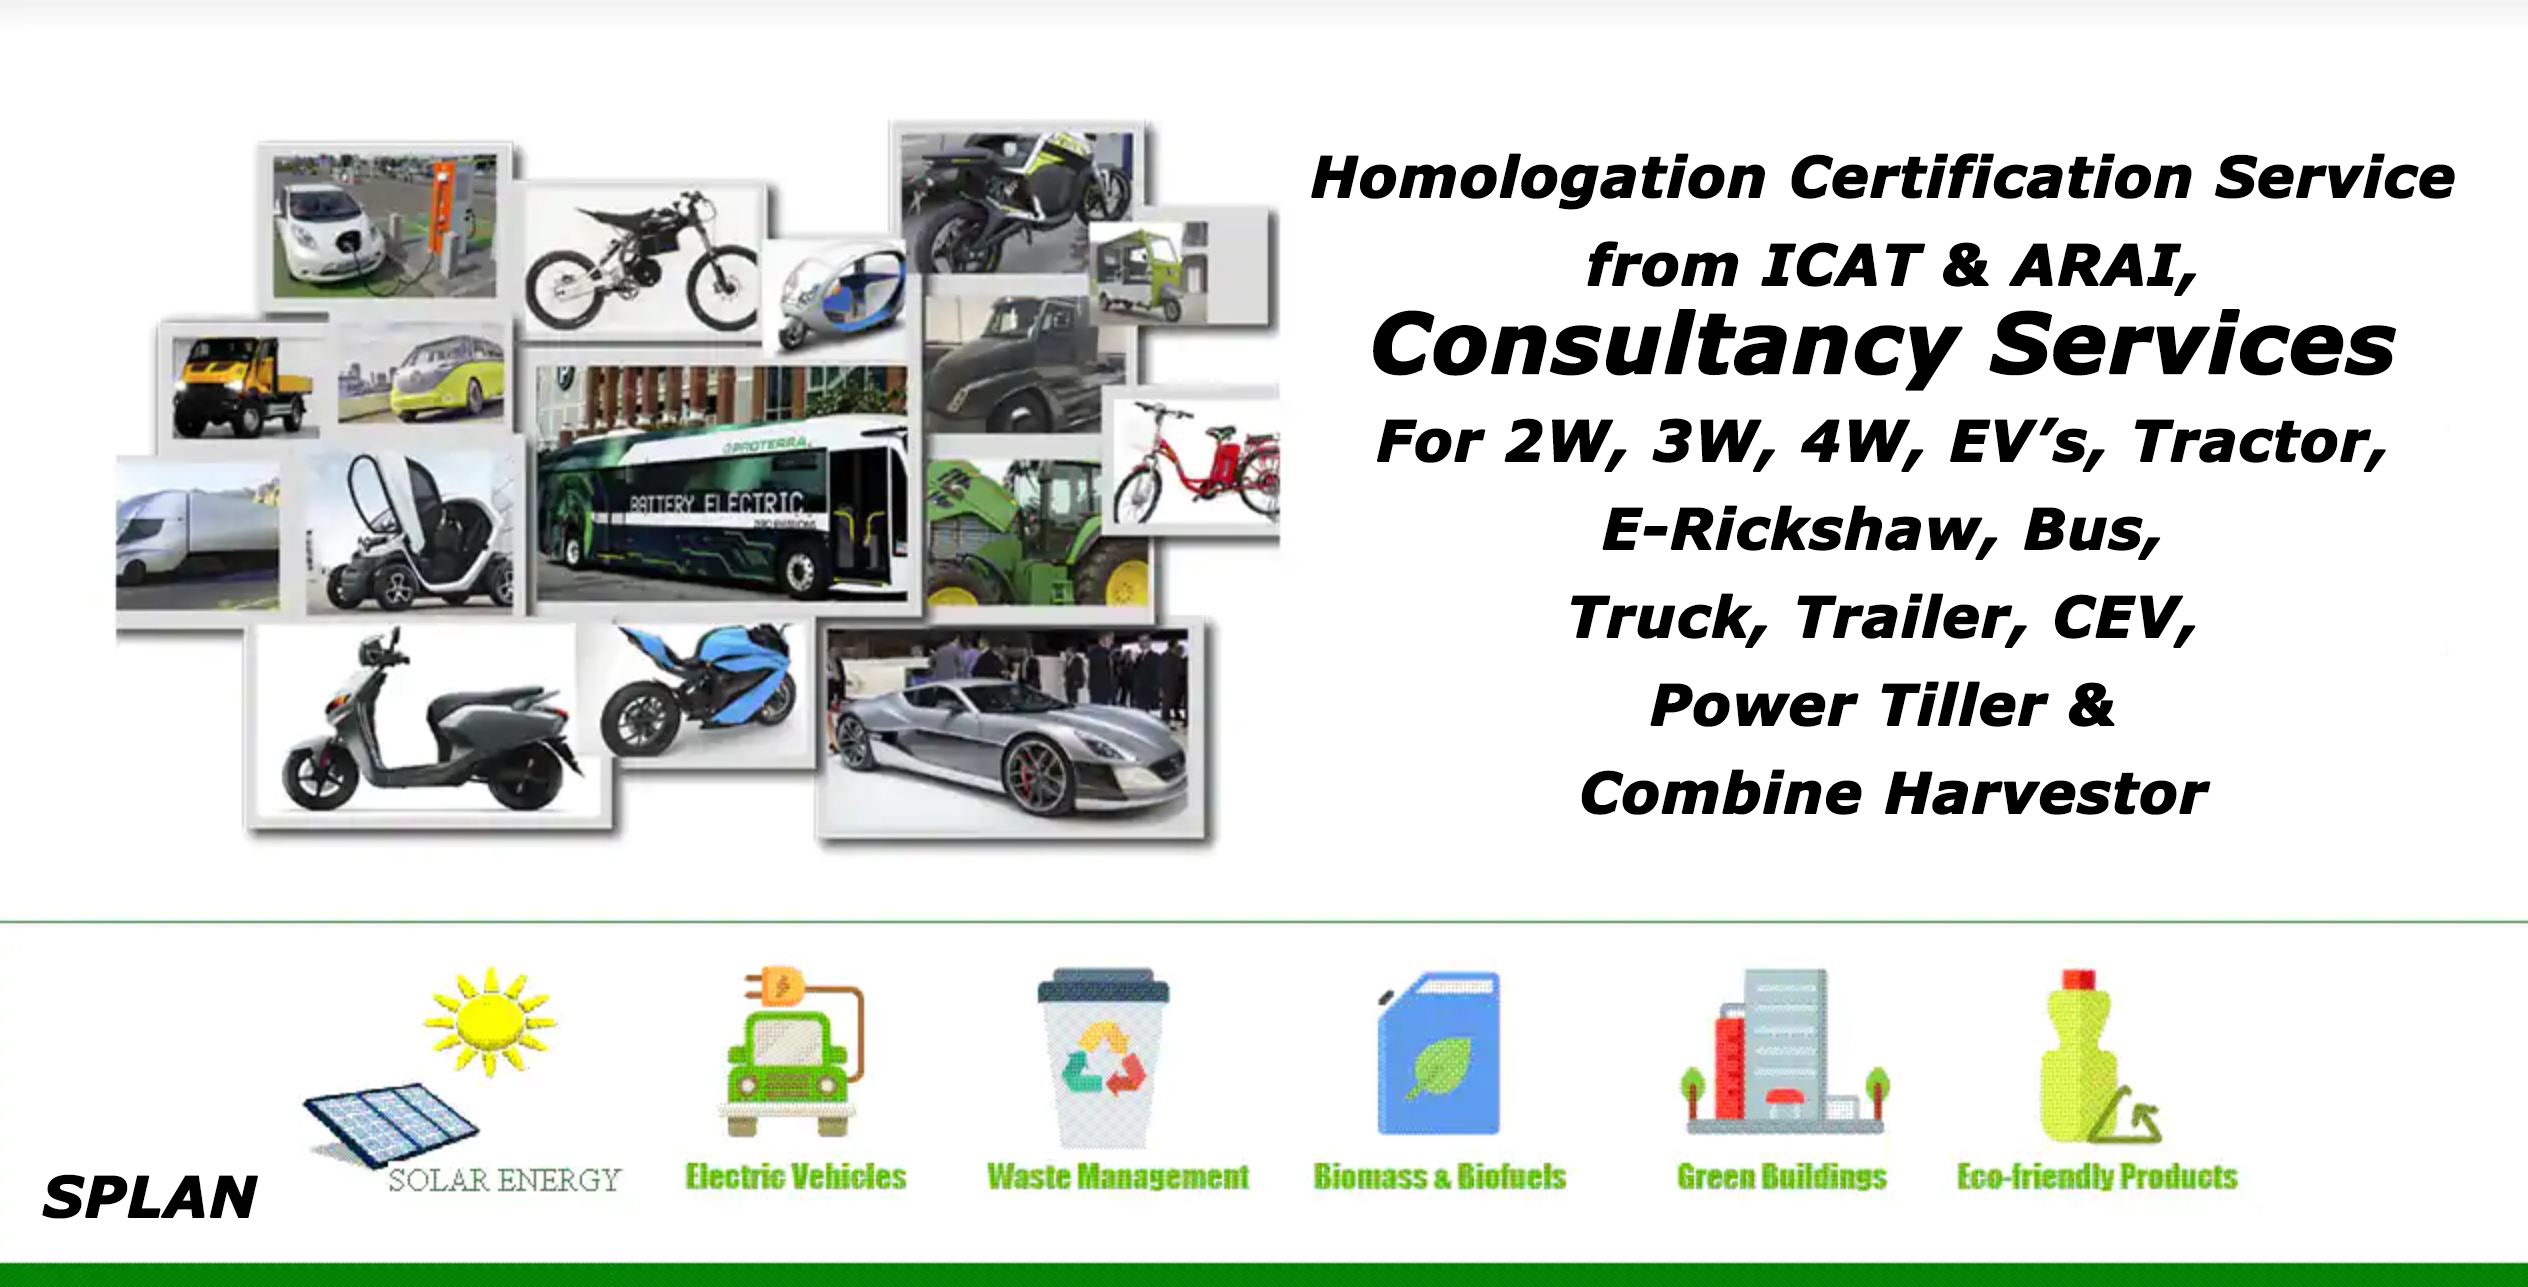 Consultancy Services For 2W, 3W, 4W, EV's, Tractor, E-Rickshaw, Bus, Truck, Trailer,